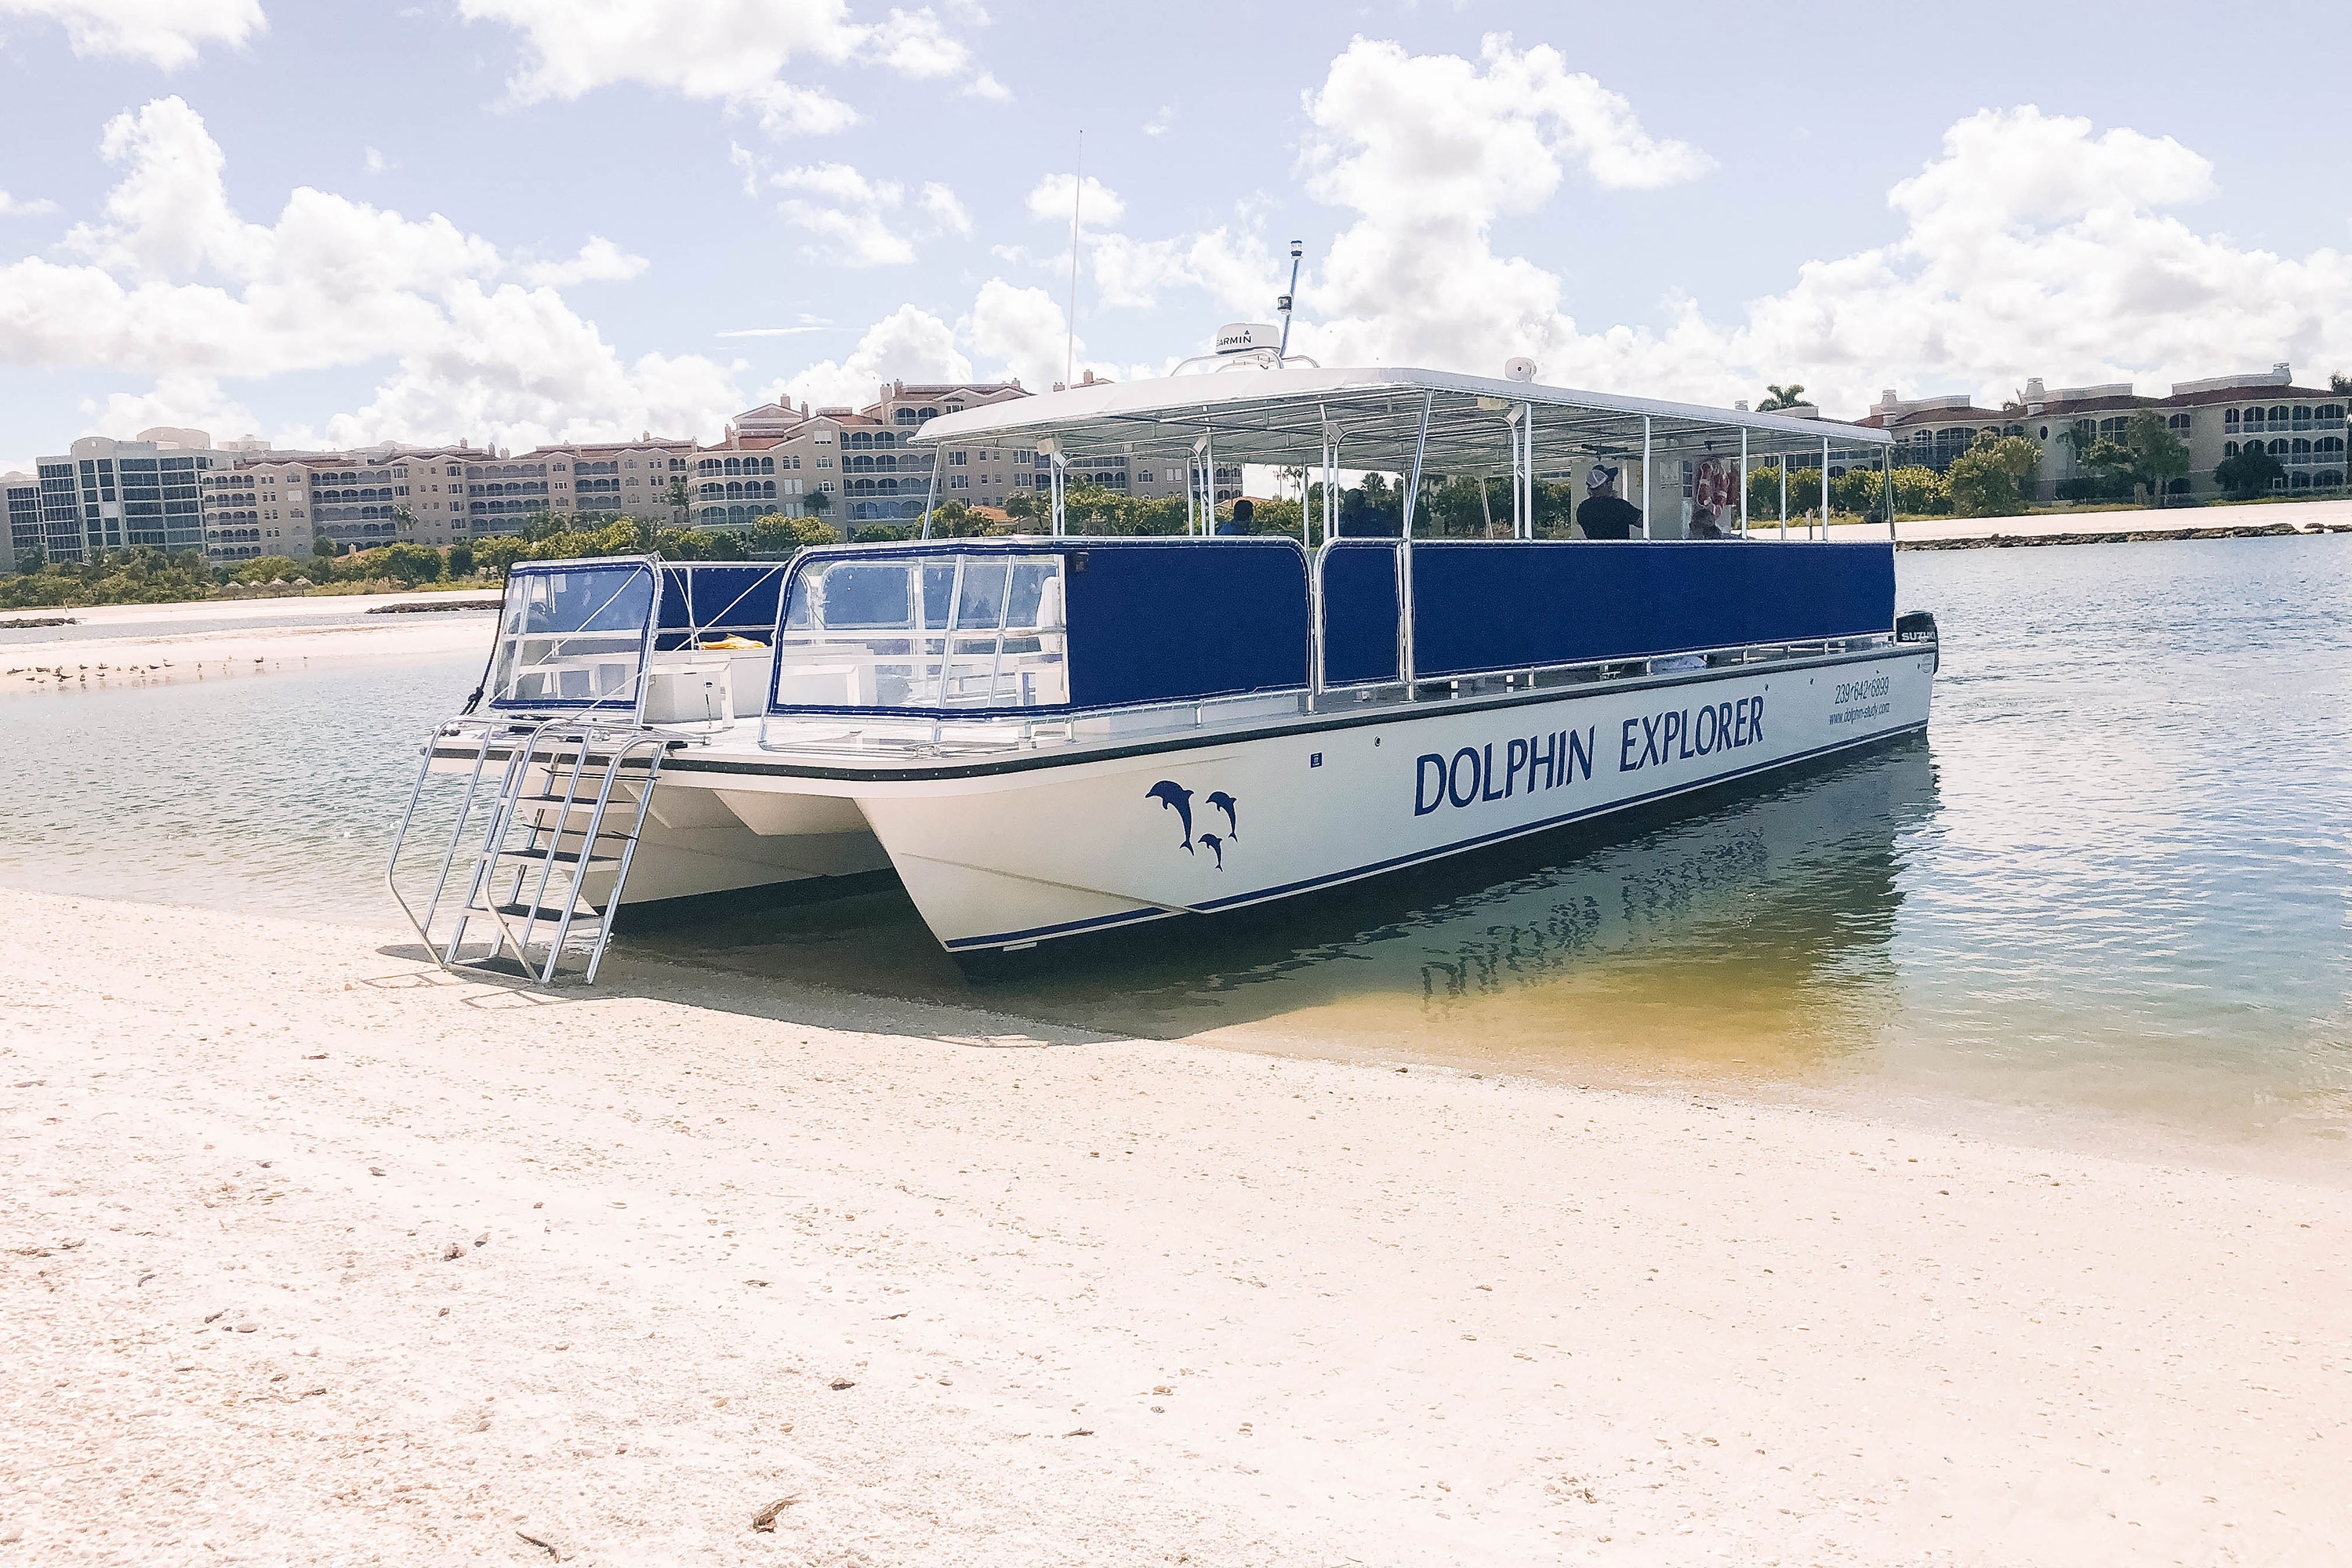 Boarding the Dolphin Explorer for a hands-on adventure to cruise the Gulf of Mexico and spot some bottlenose dolphins! #marcoisland #naplesflorida